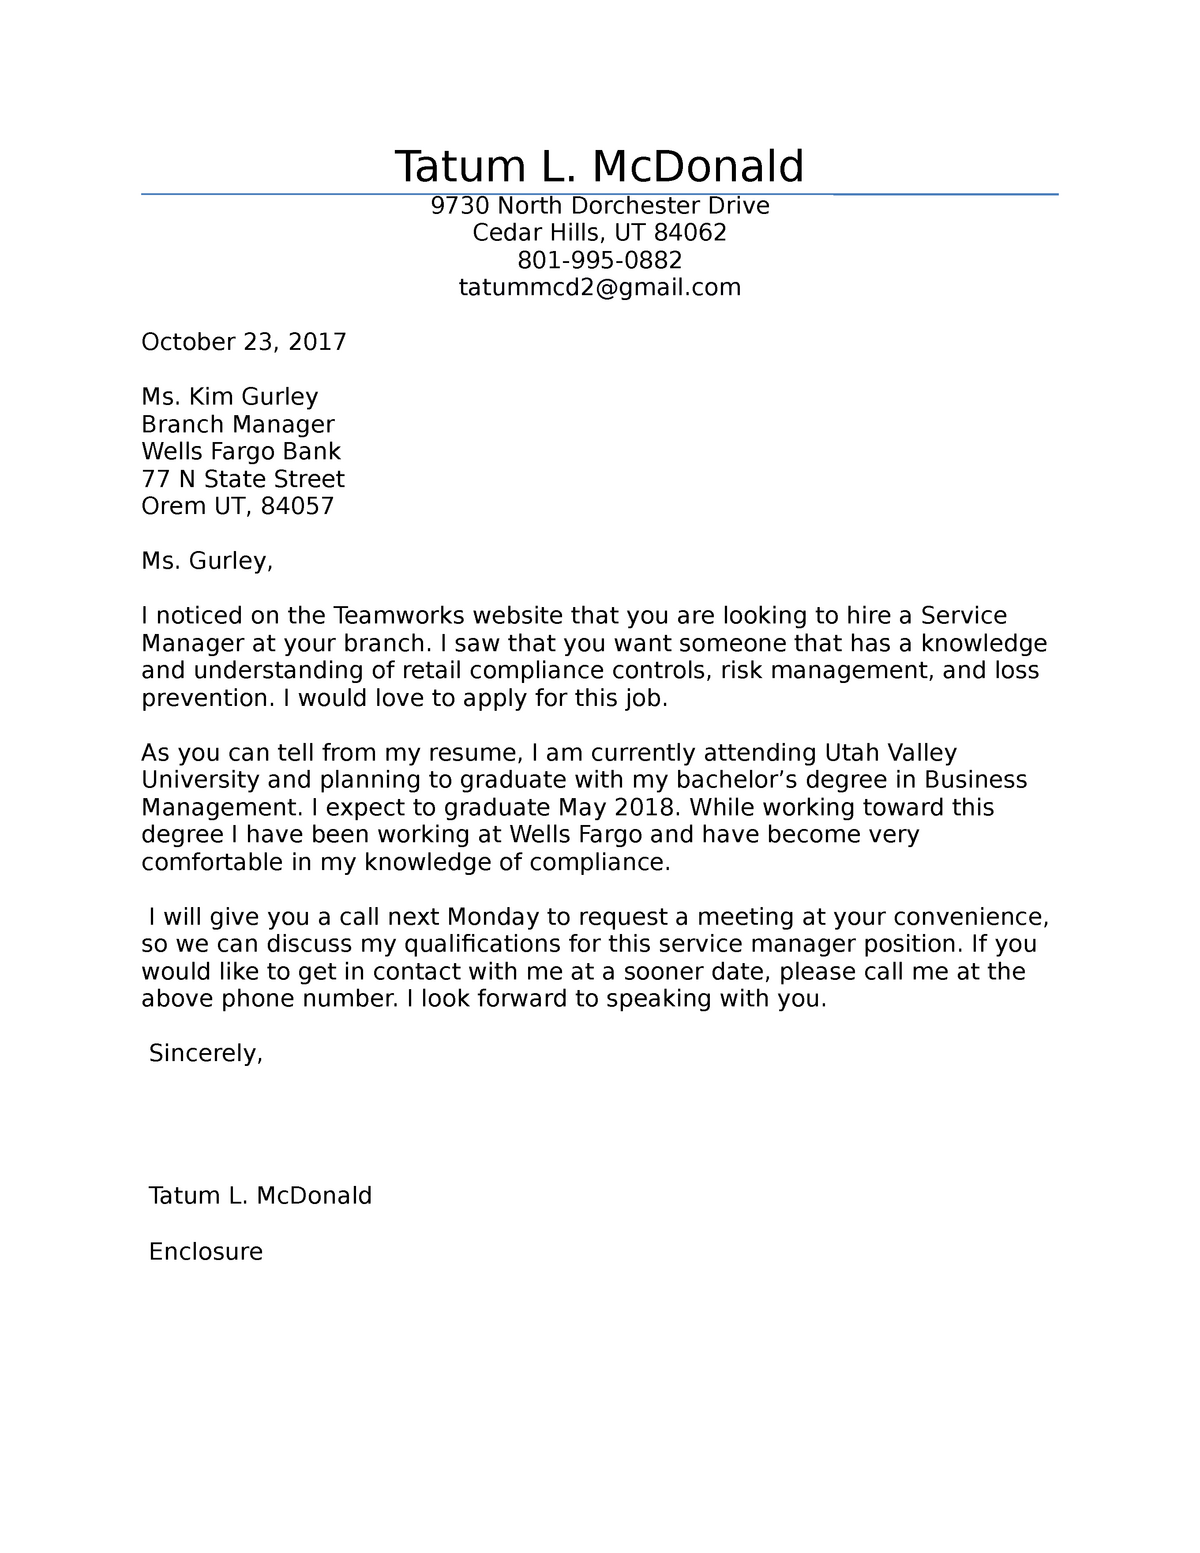 MKTG-Cover Letter - The professor I don't remember awesome class